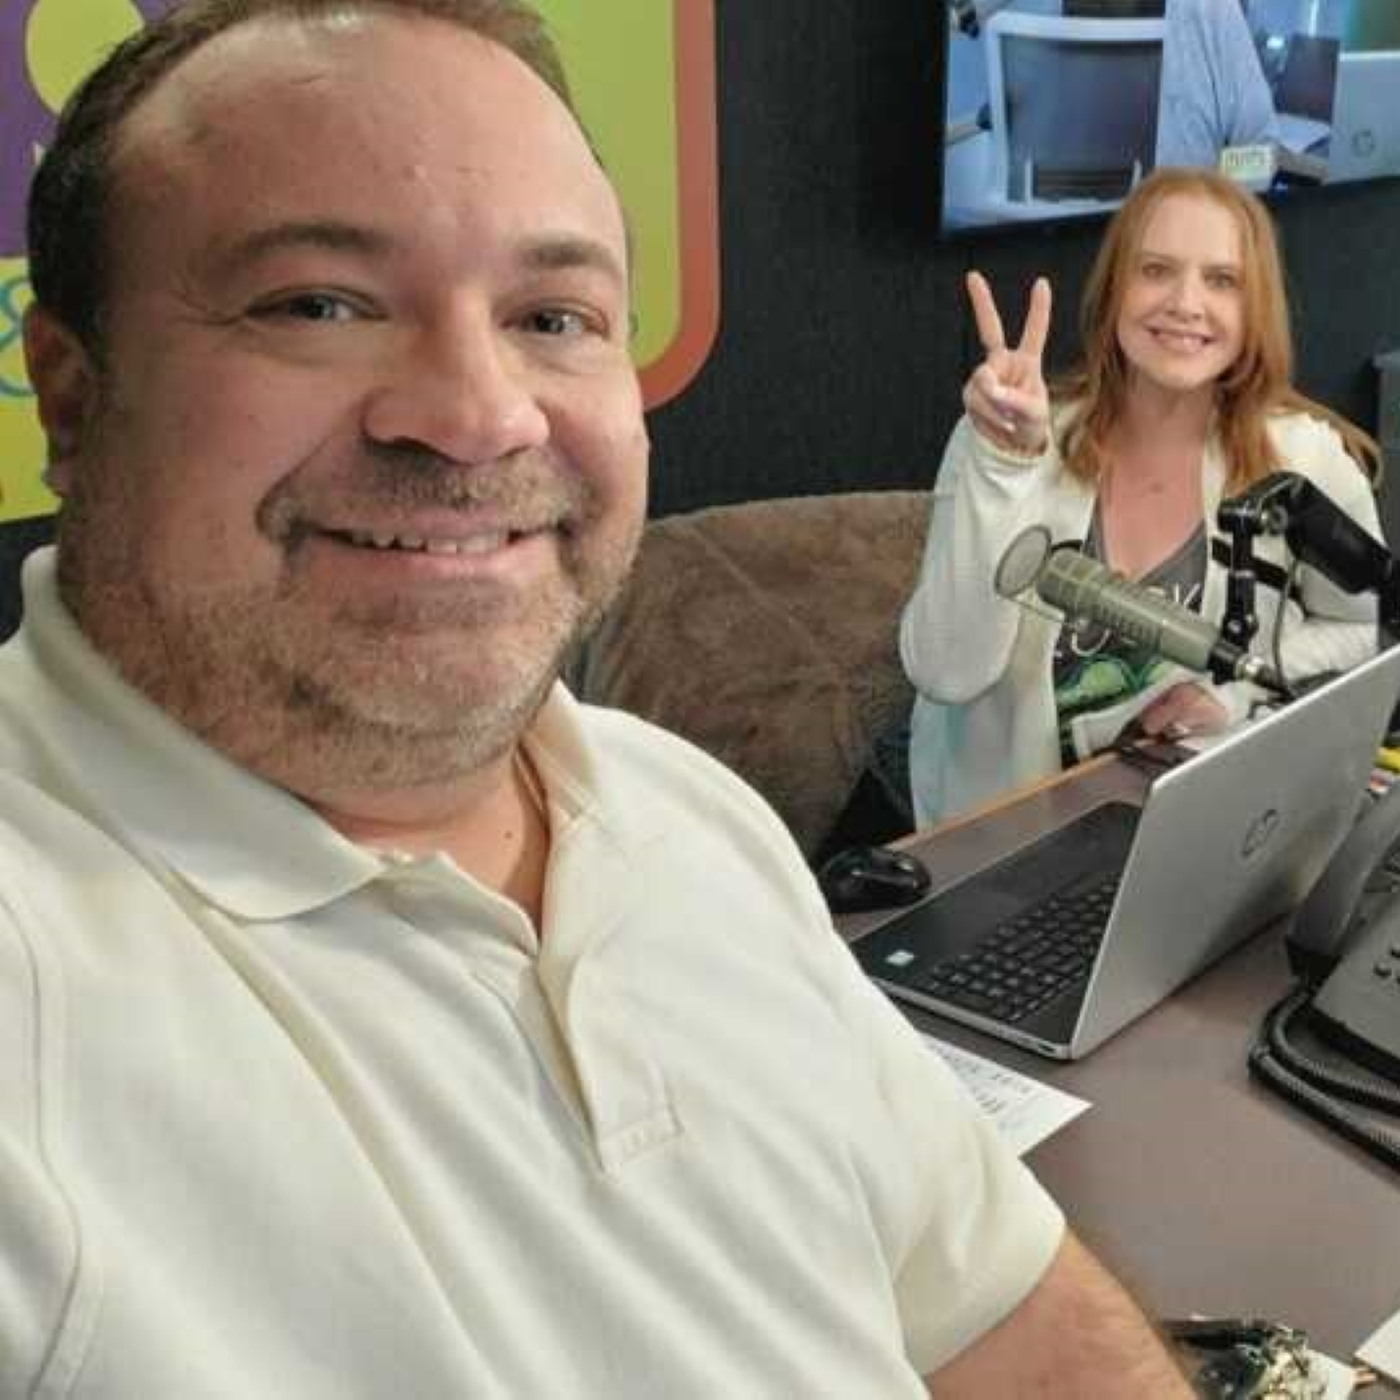 ICYMI After The Show PODCAST: What is Murphy secretly texting Jodi during the show?